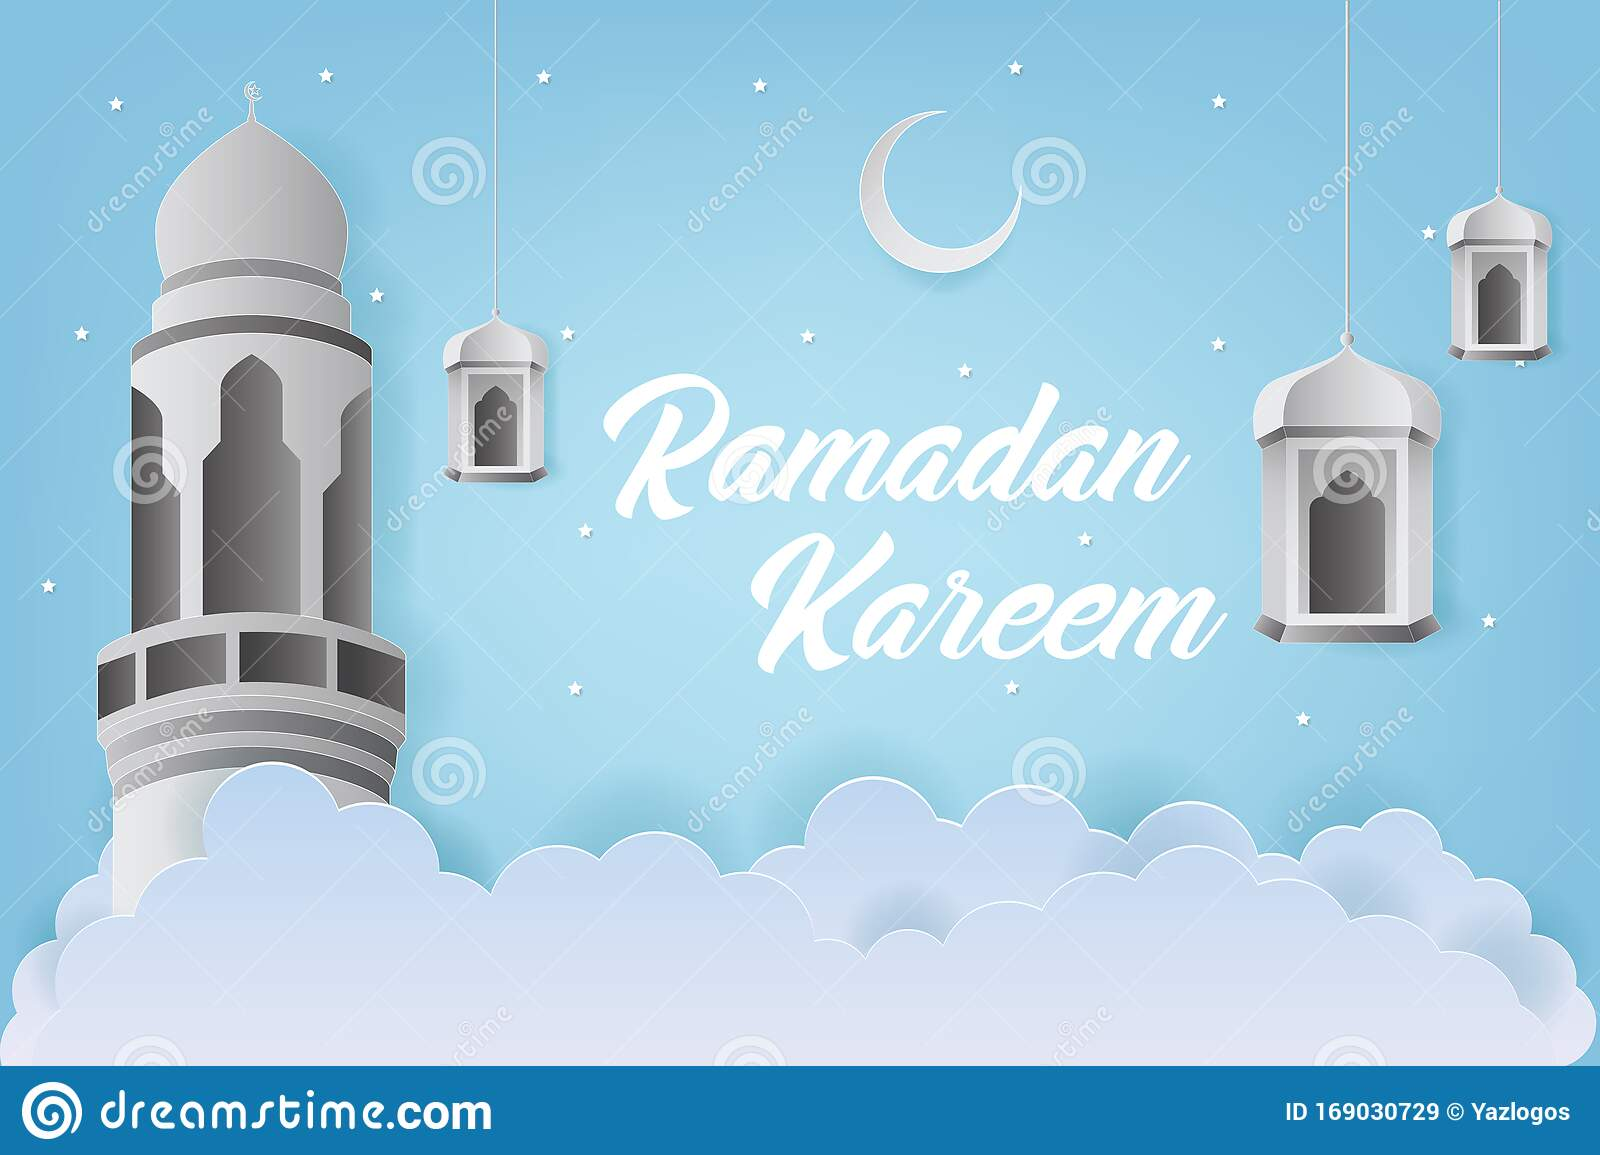 Ramadan Kareem Greeting Design With Tower Mosque And Lantern Vector Illustration Paper Art And Craft Style Stock Vector Illustration Of Paper Muslim 169030729